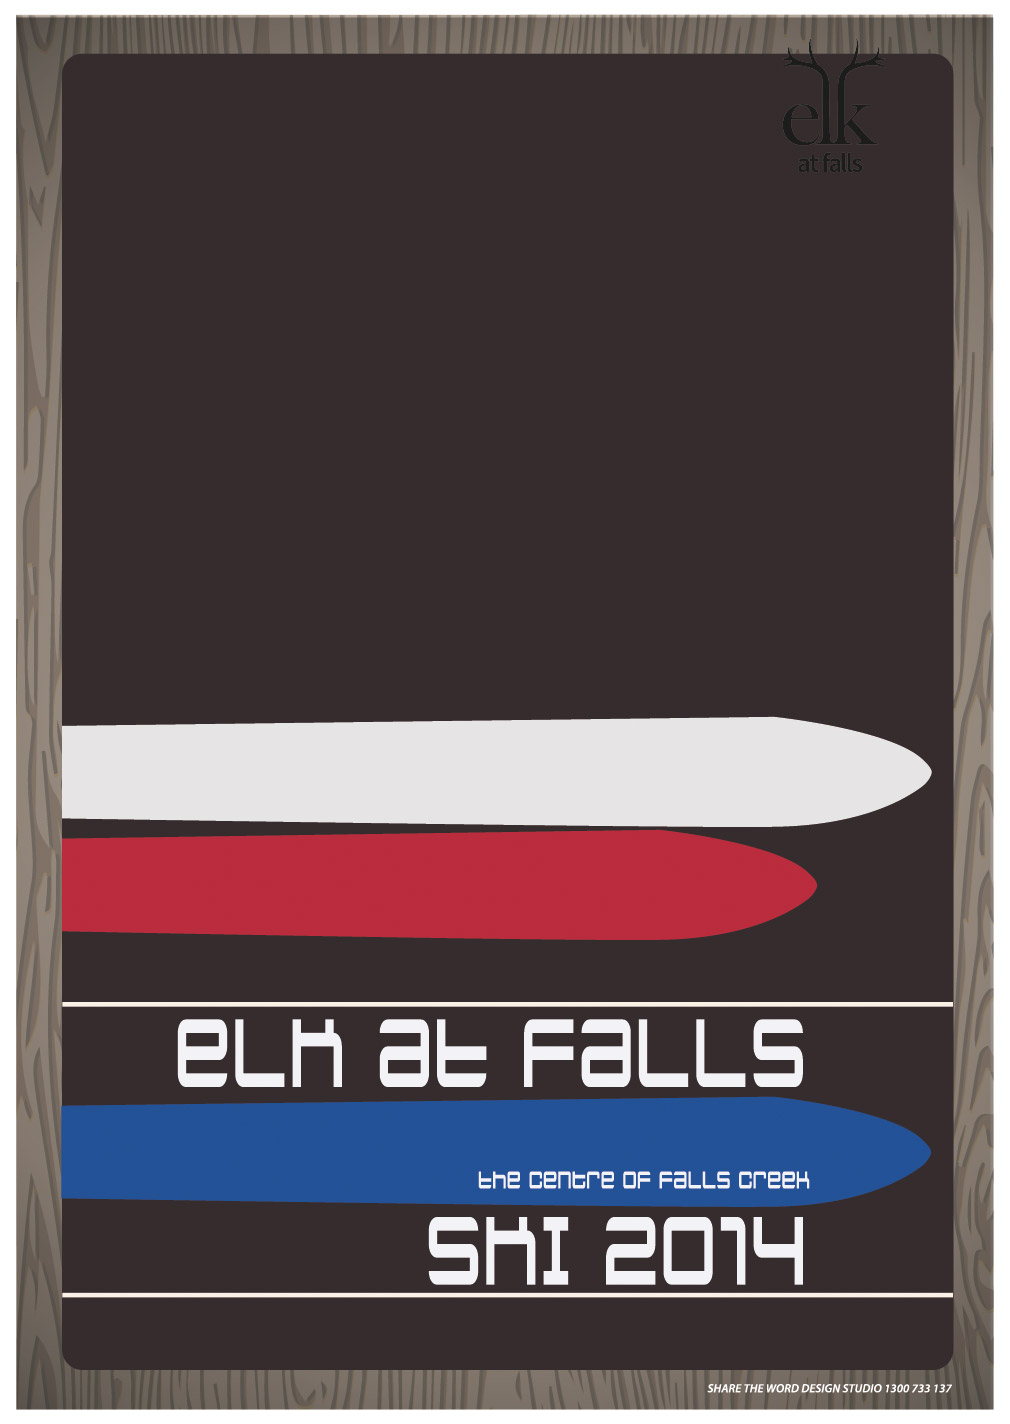 Elk at falls poster marketing 2014